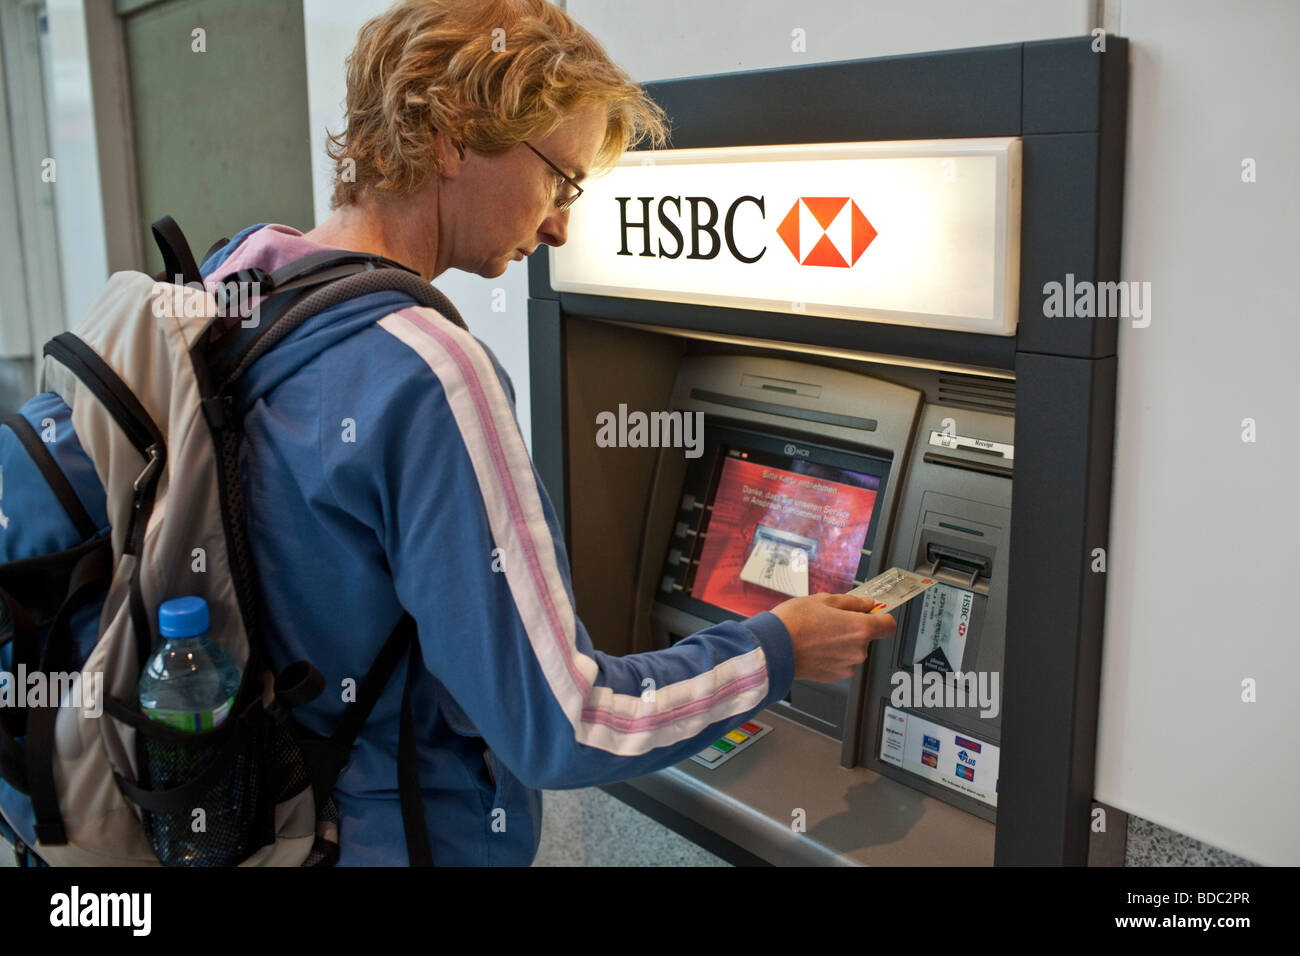 Cashpoint of HSBC Bank Stock Photo